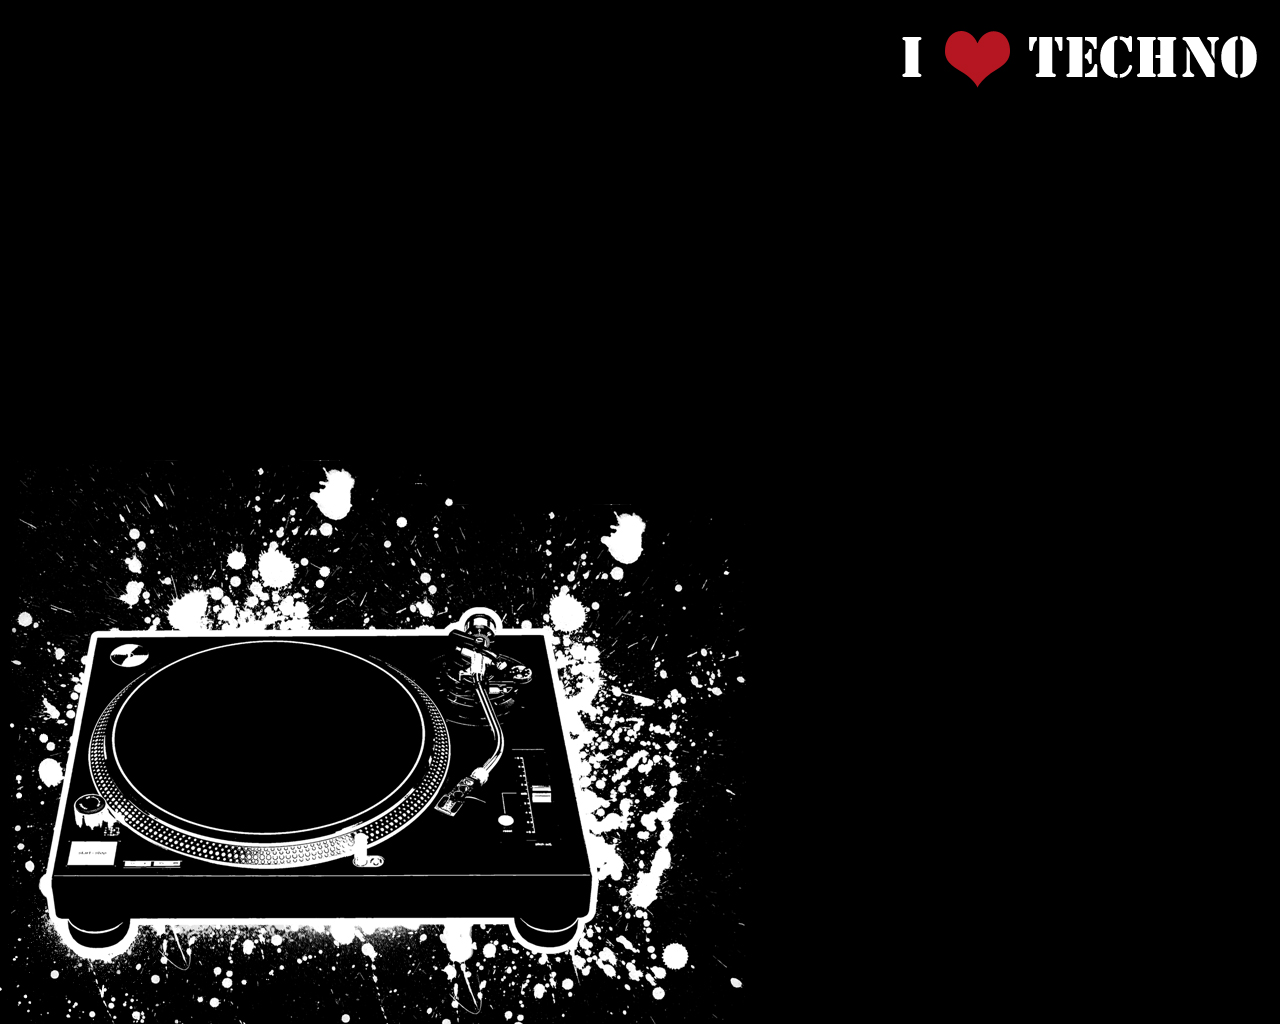 I love Techno by mortifi